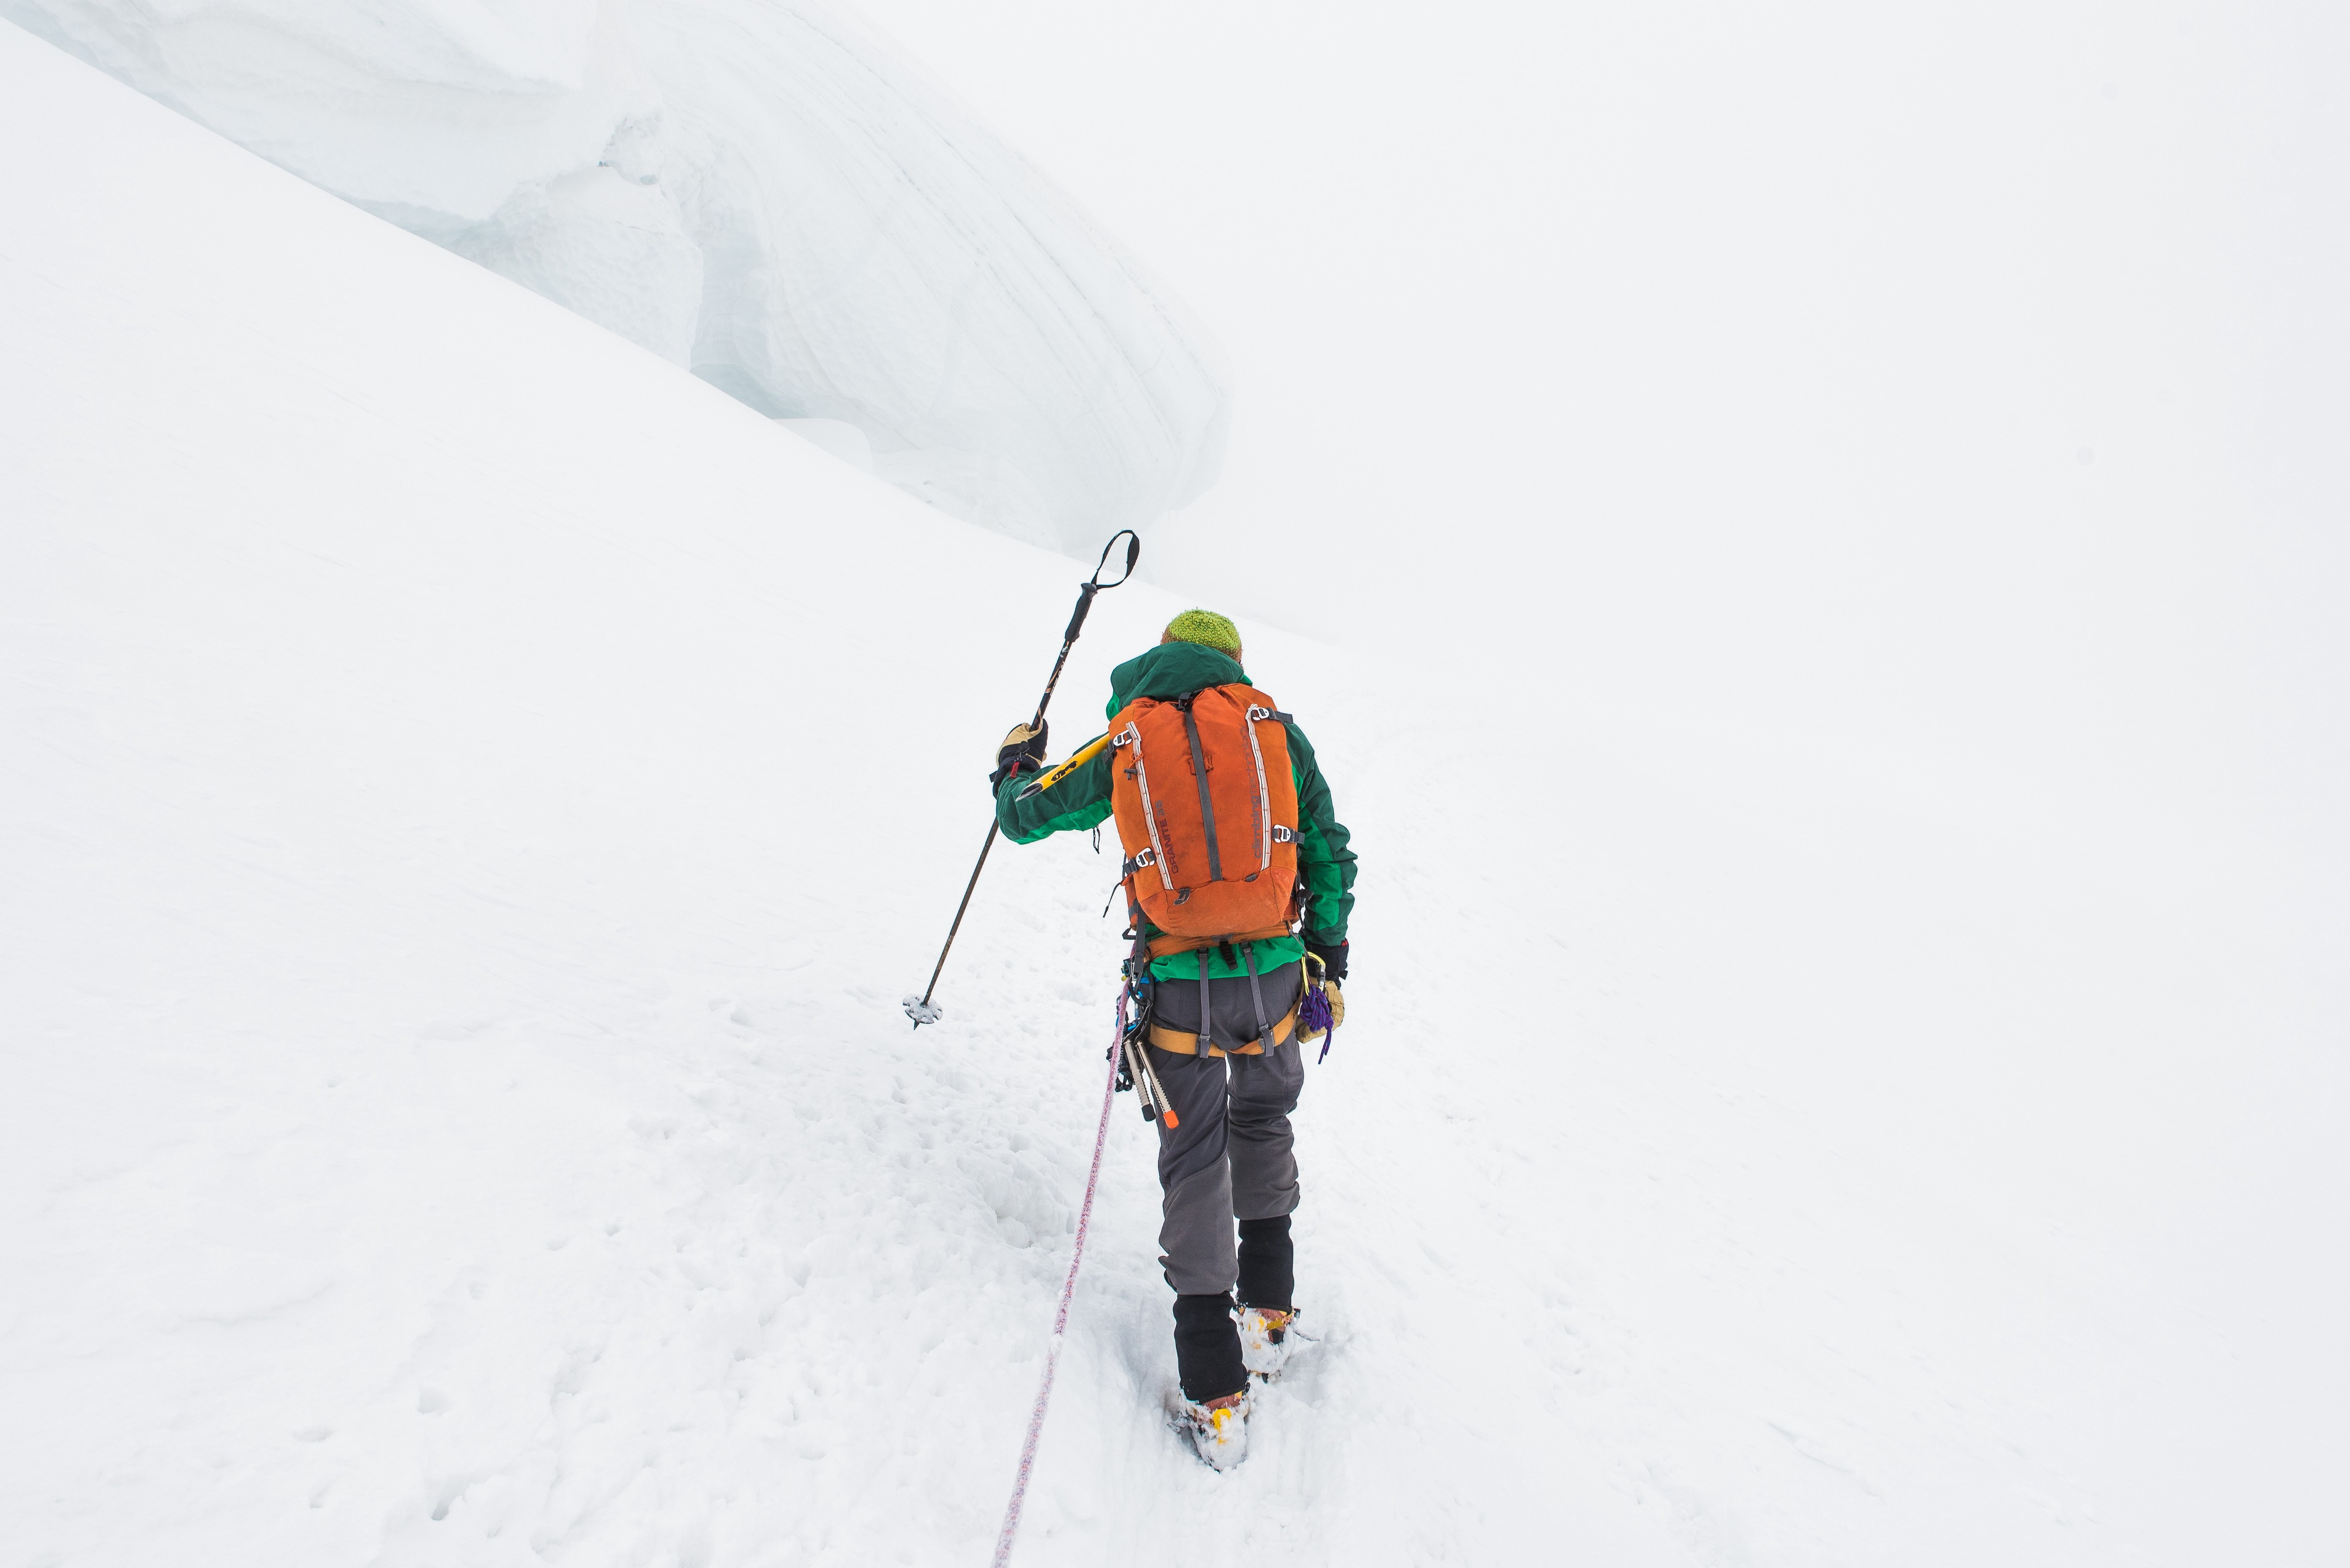 hiker in colorful outfit climbing side of snow-covered mountain